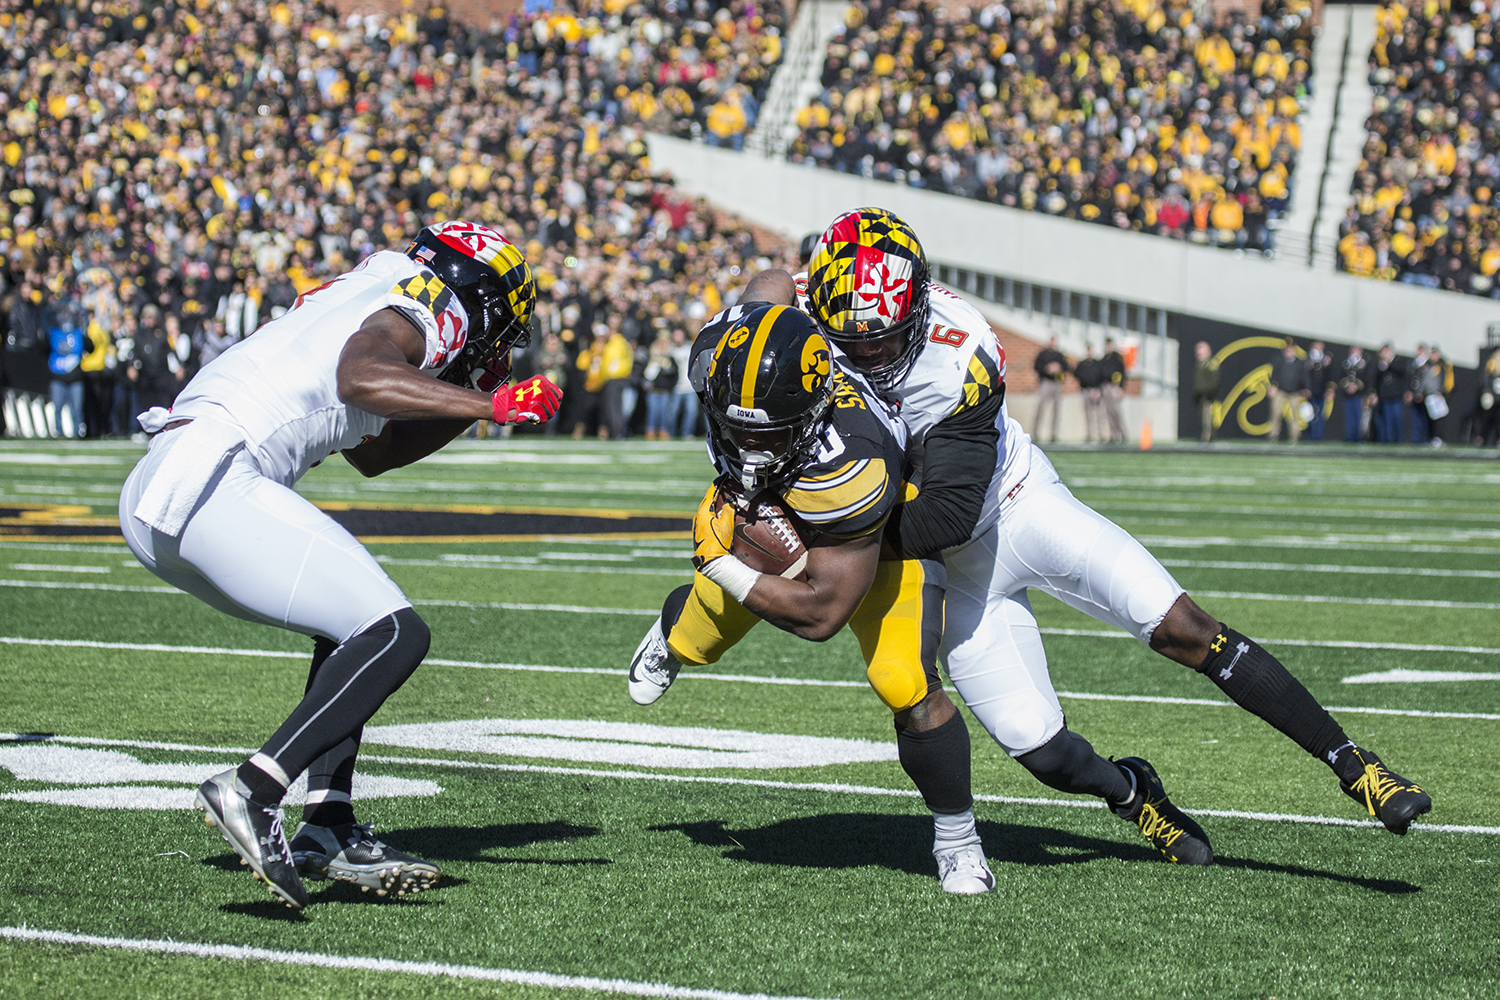 Iowa+running+back+Mekhi+Sargent+is+tackled+during+a+football+game+between+Iowa+and+Maryland+in+Kinnick+Stadium+on+Saturday%2C+October+20%2C+2018.+The+Hawkeyes+defeated+the+Terrapins%2C+23-0.+